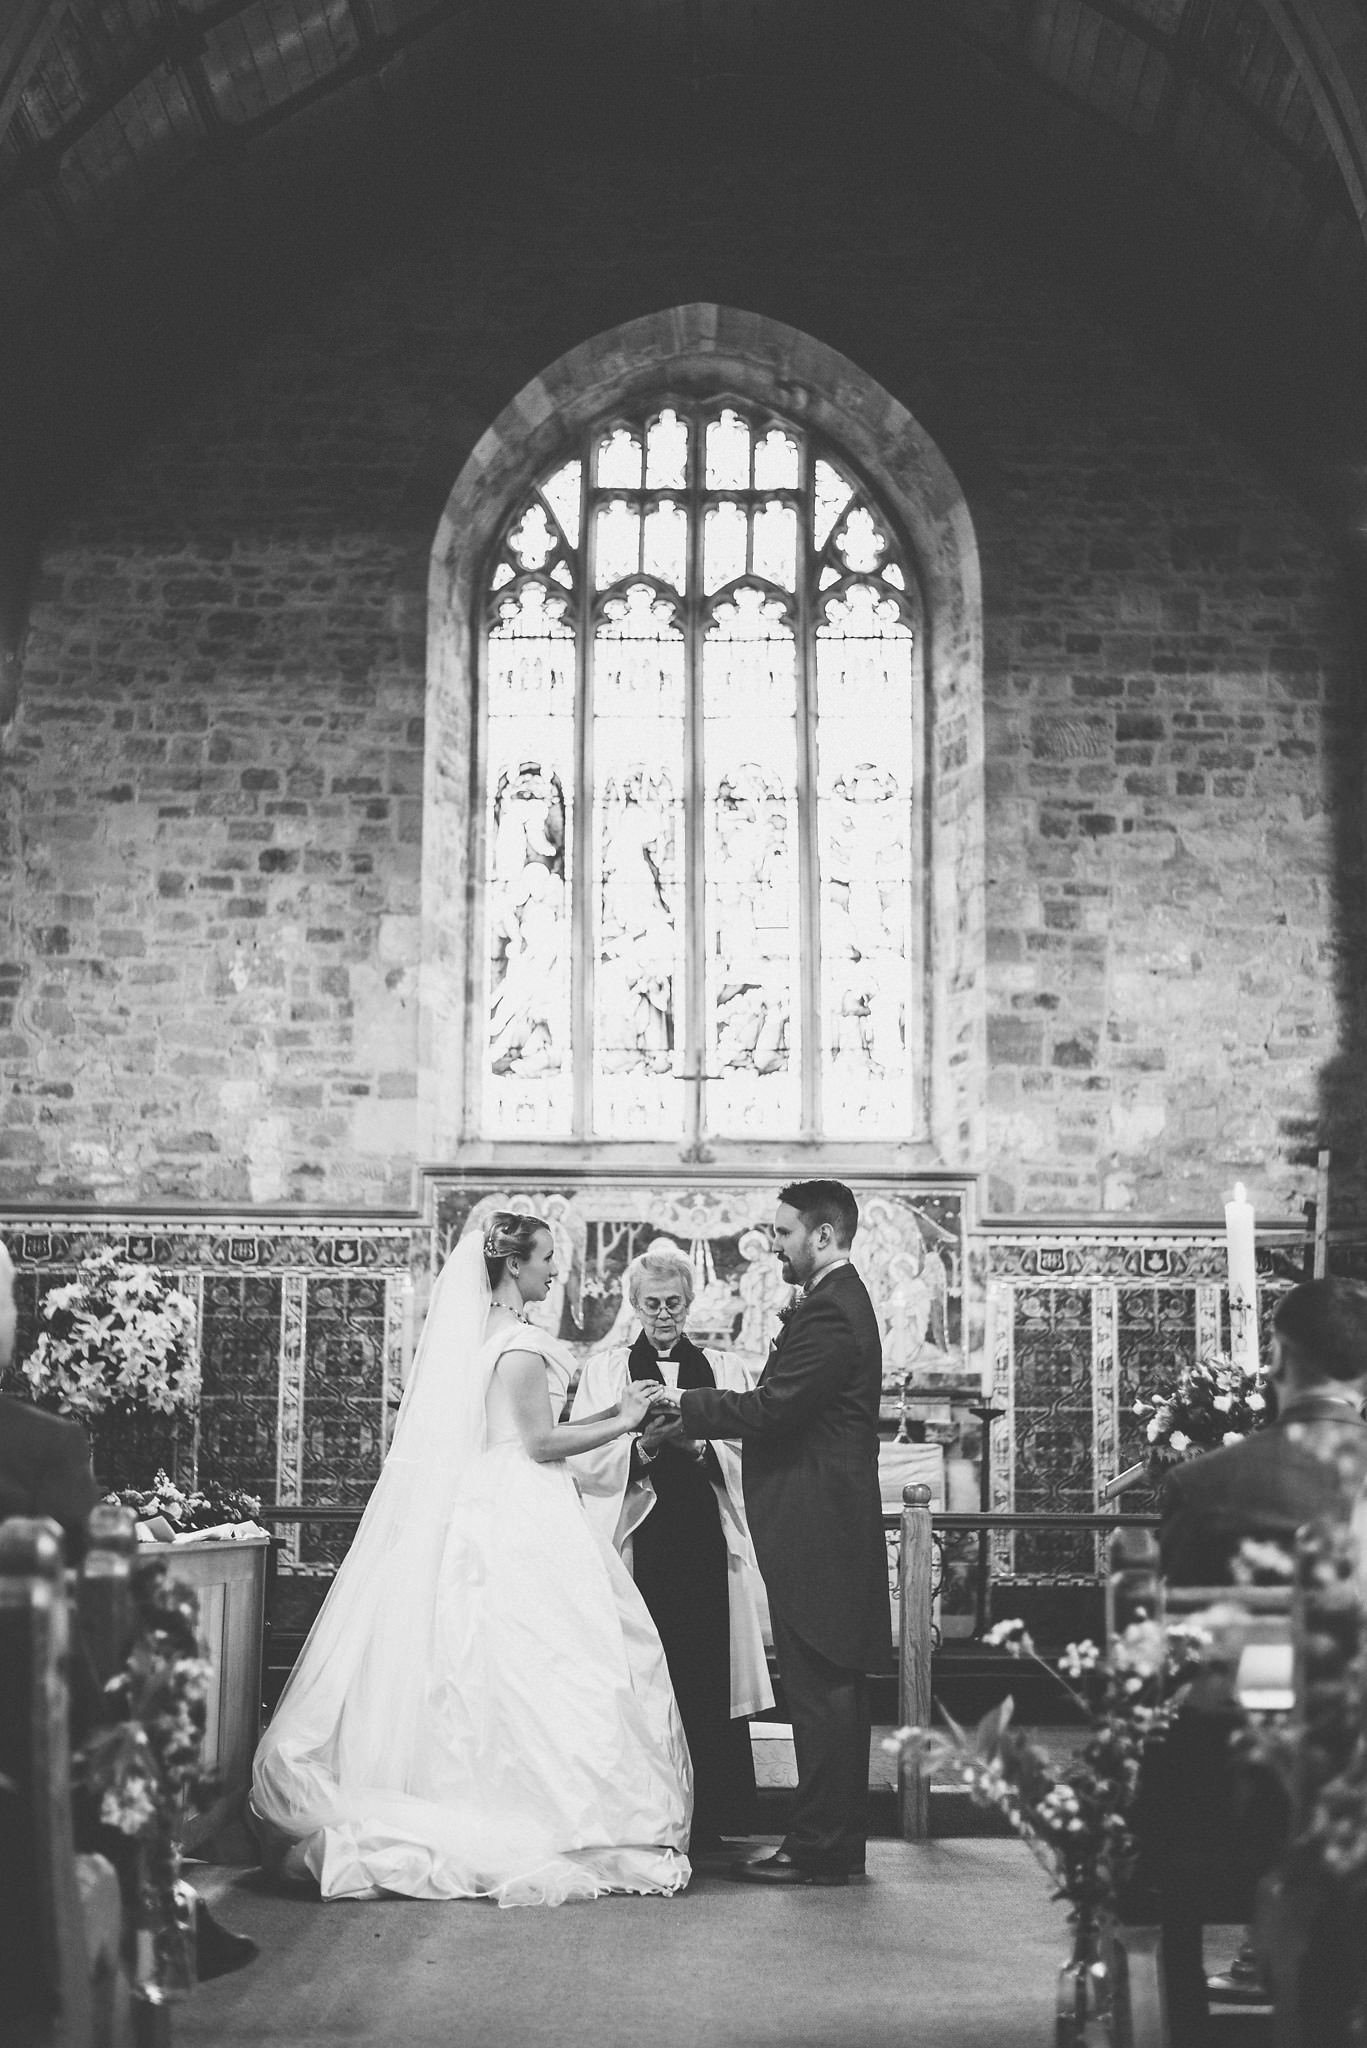 A black and white shot of the couple at the altar, holding hands as they are pronounced man and wife